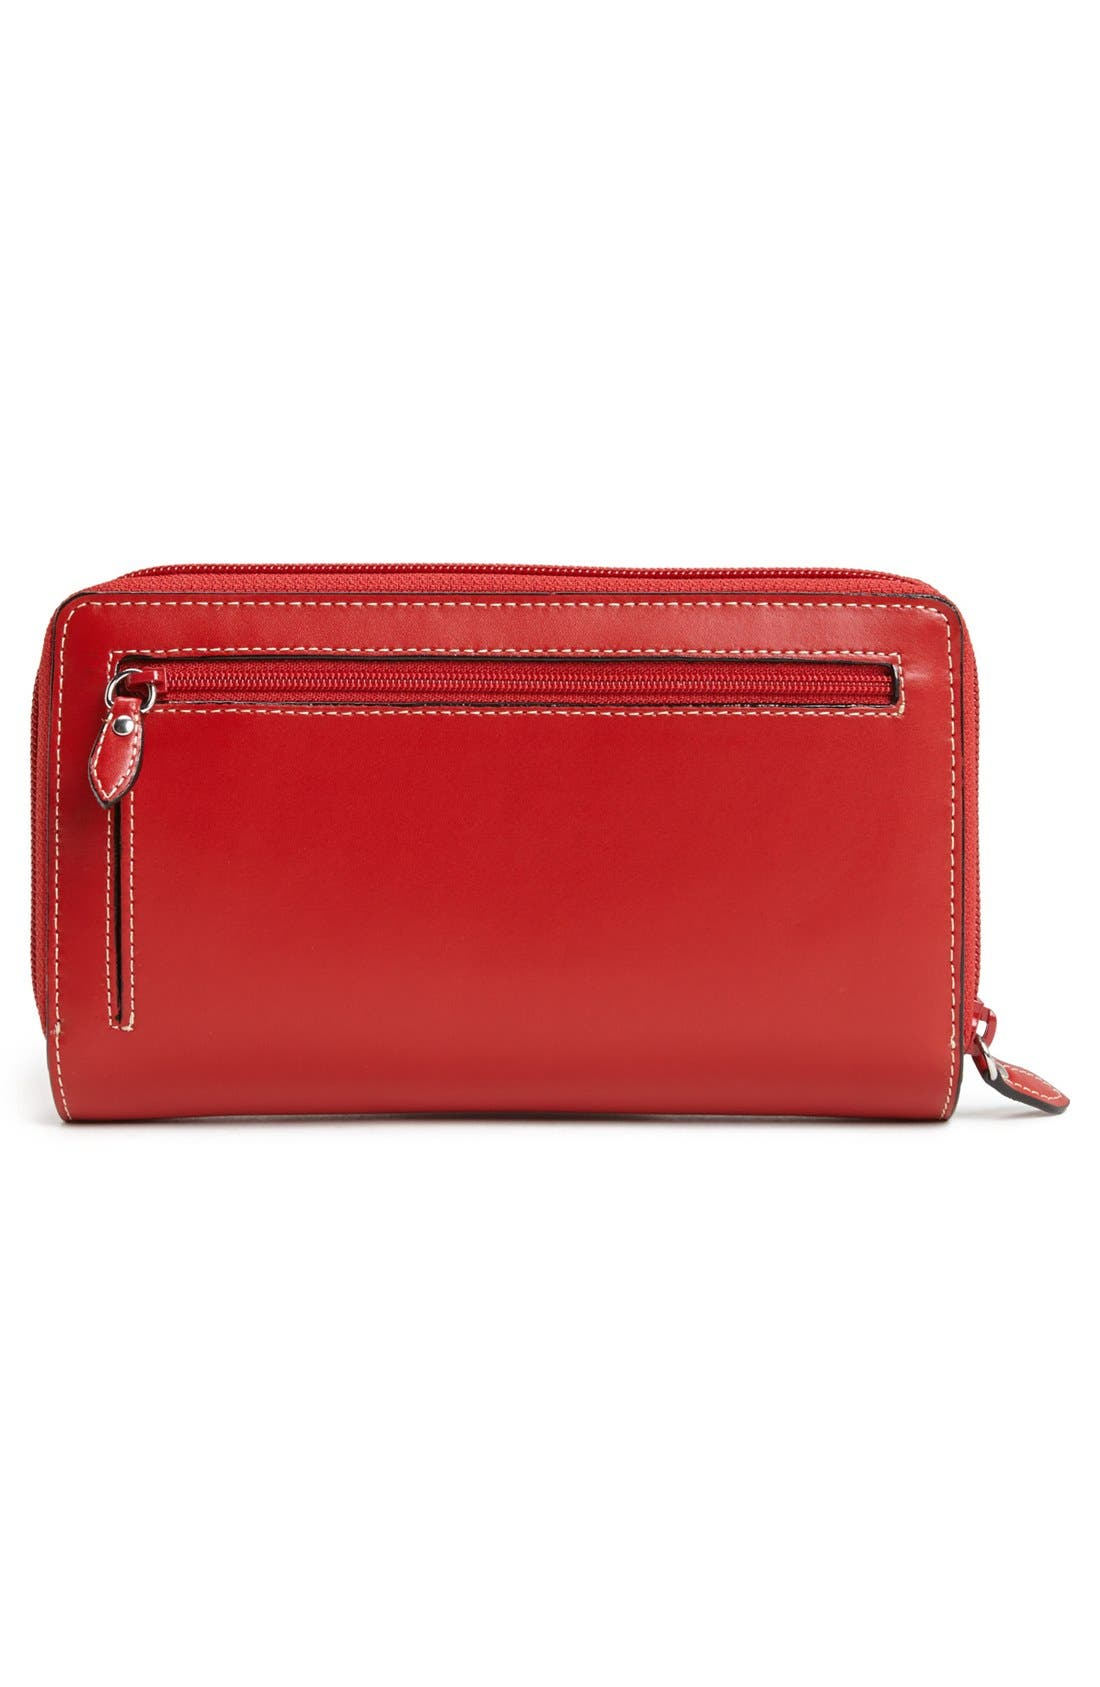 Alternate Image 3  - Lodis 'Audrey - Deluxe' Checkbook Clutch Wallet